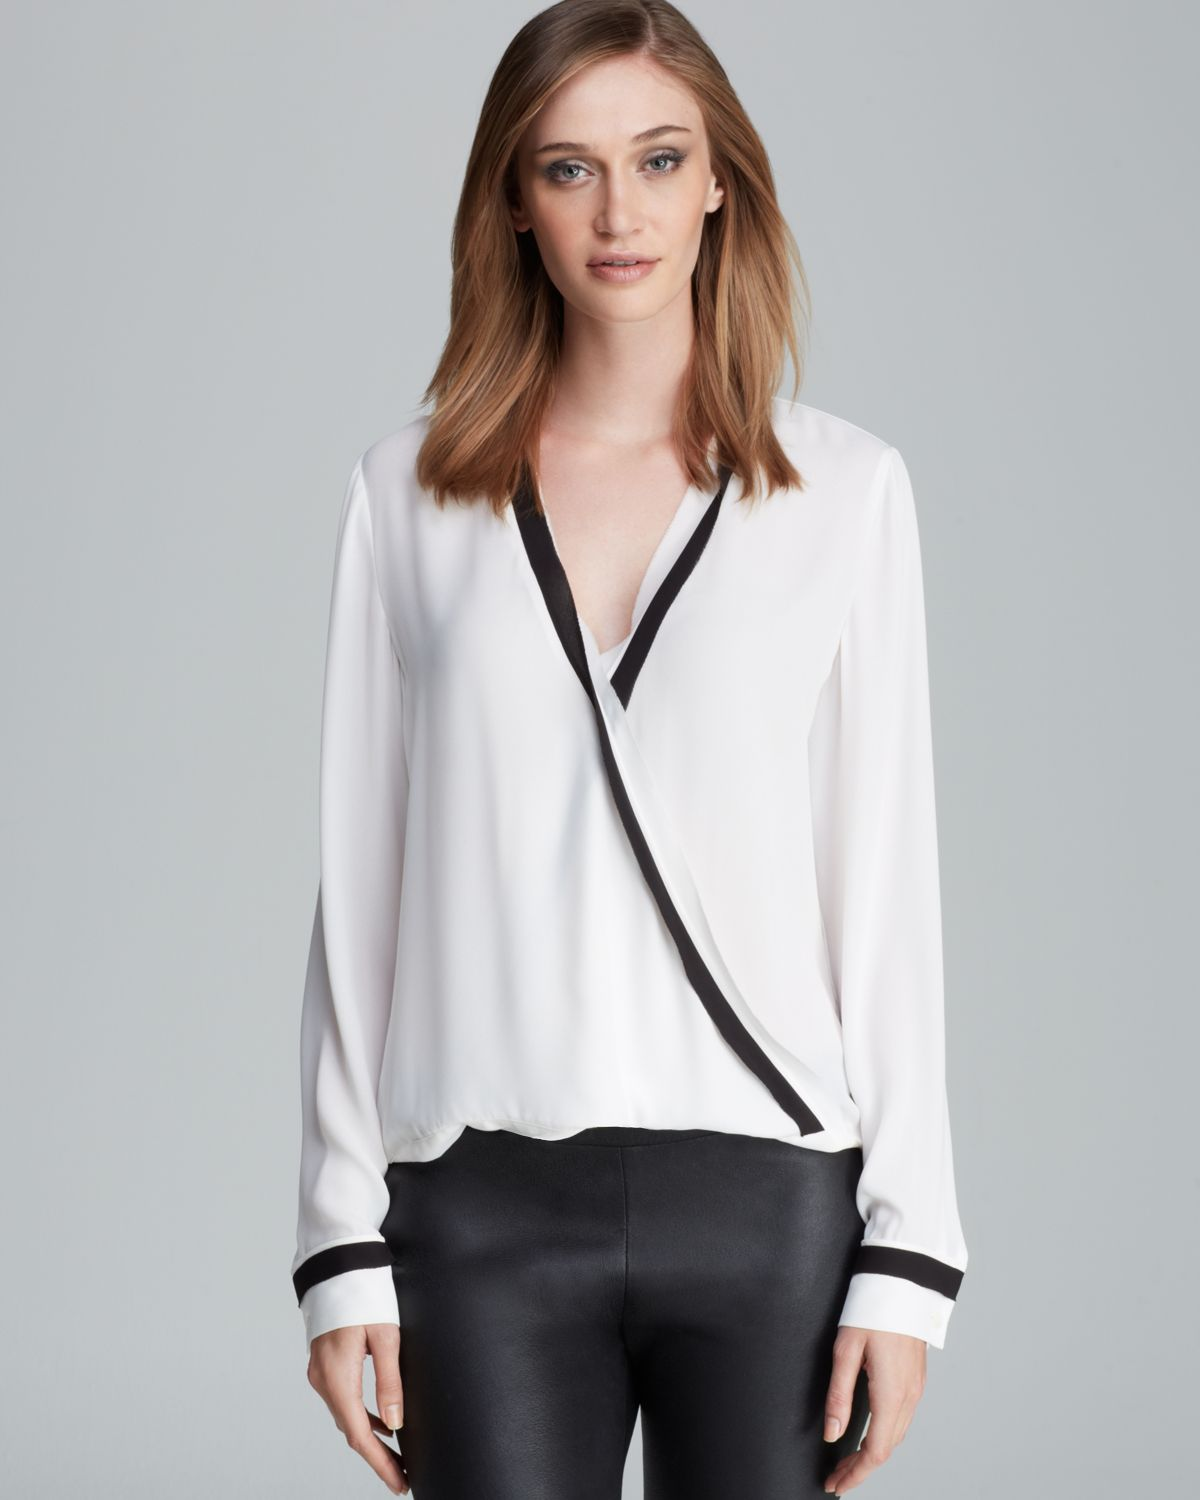 Vince camuto Contrast Wrap Blouse in White | Lyst